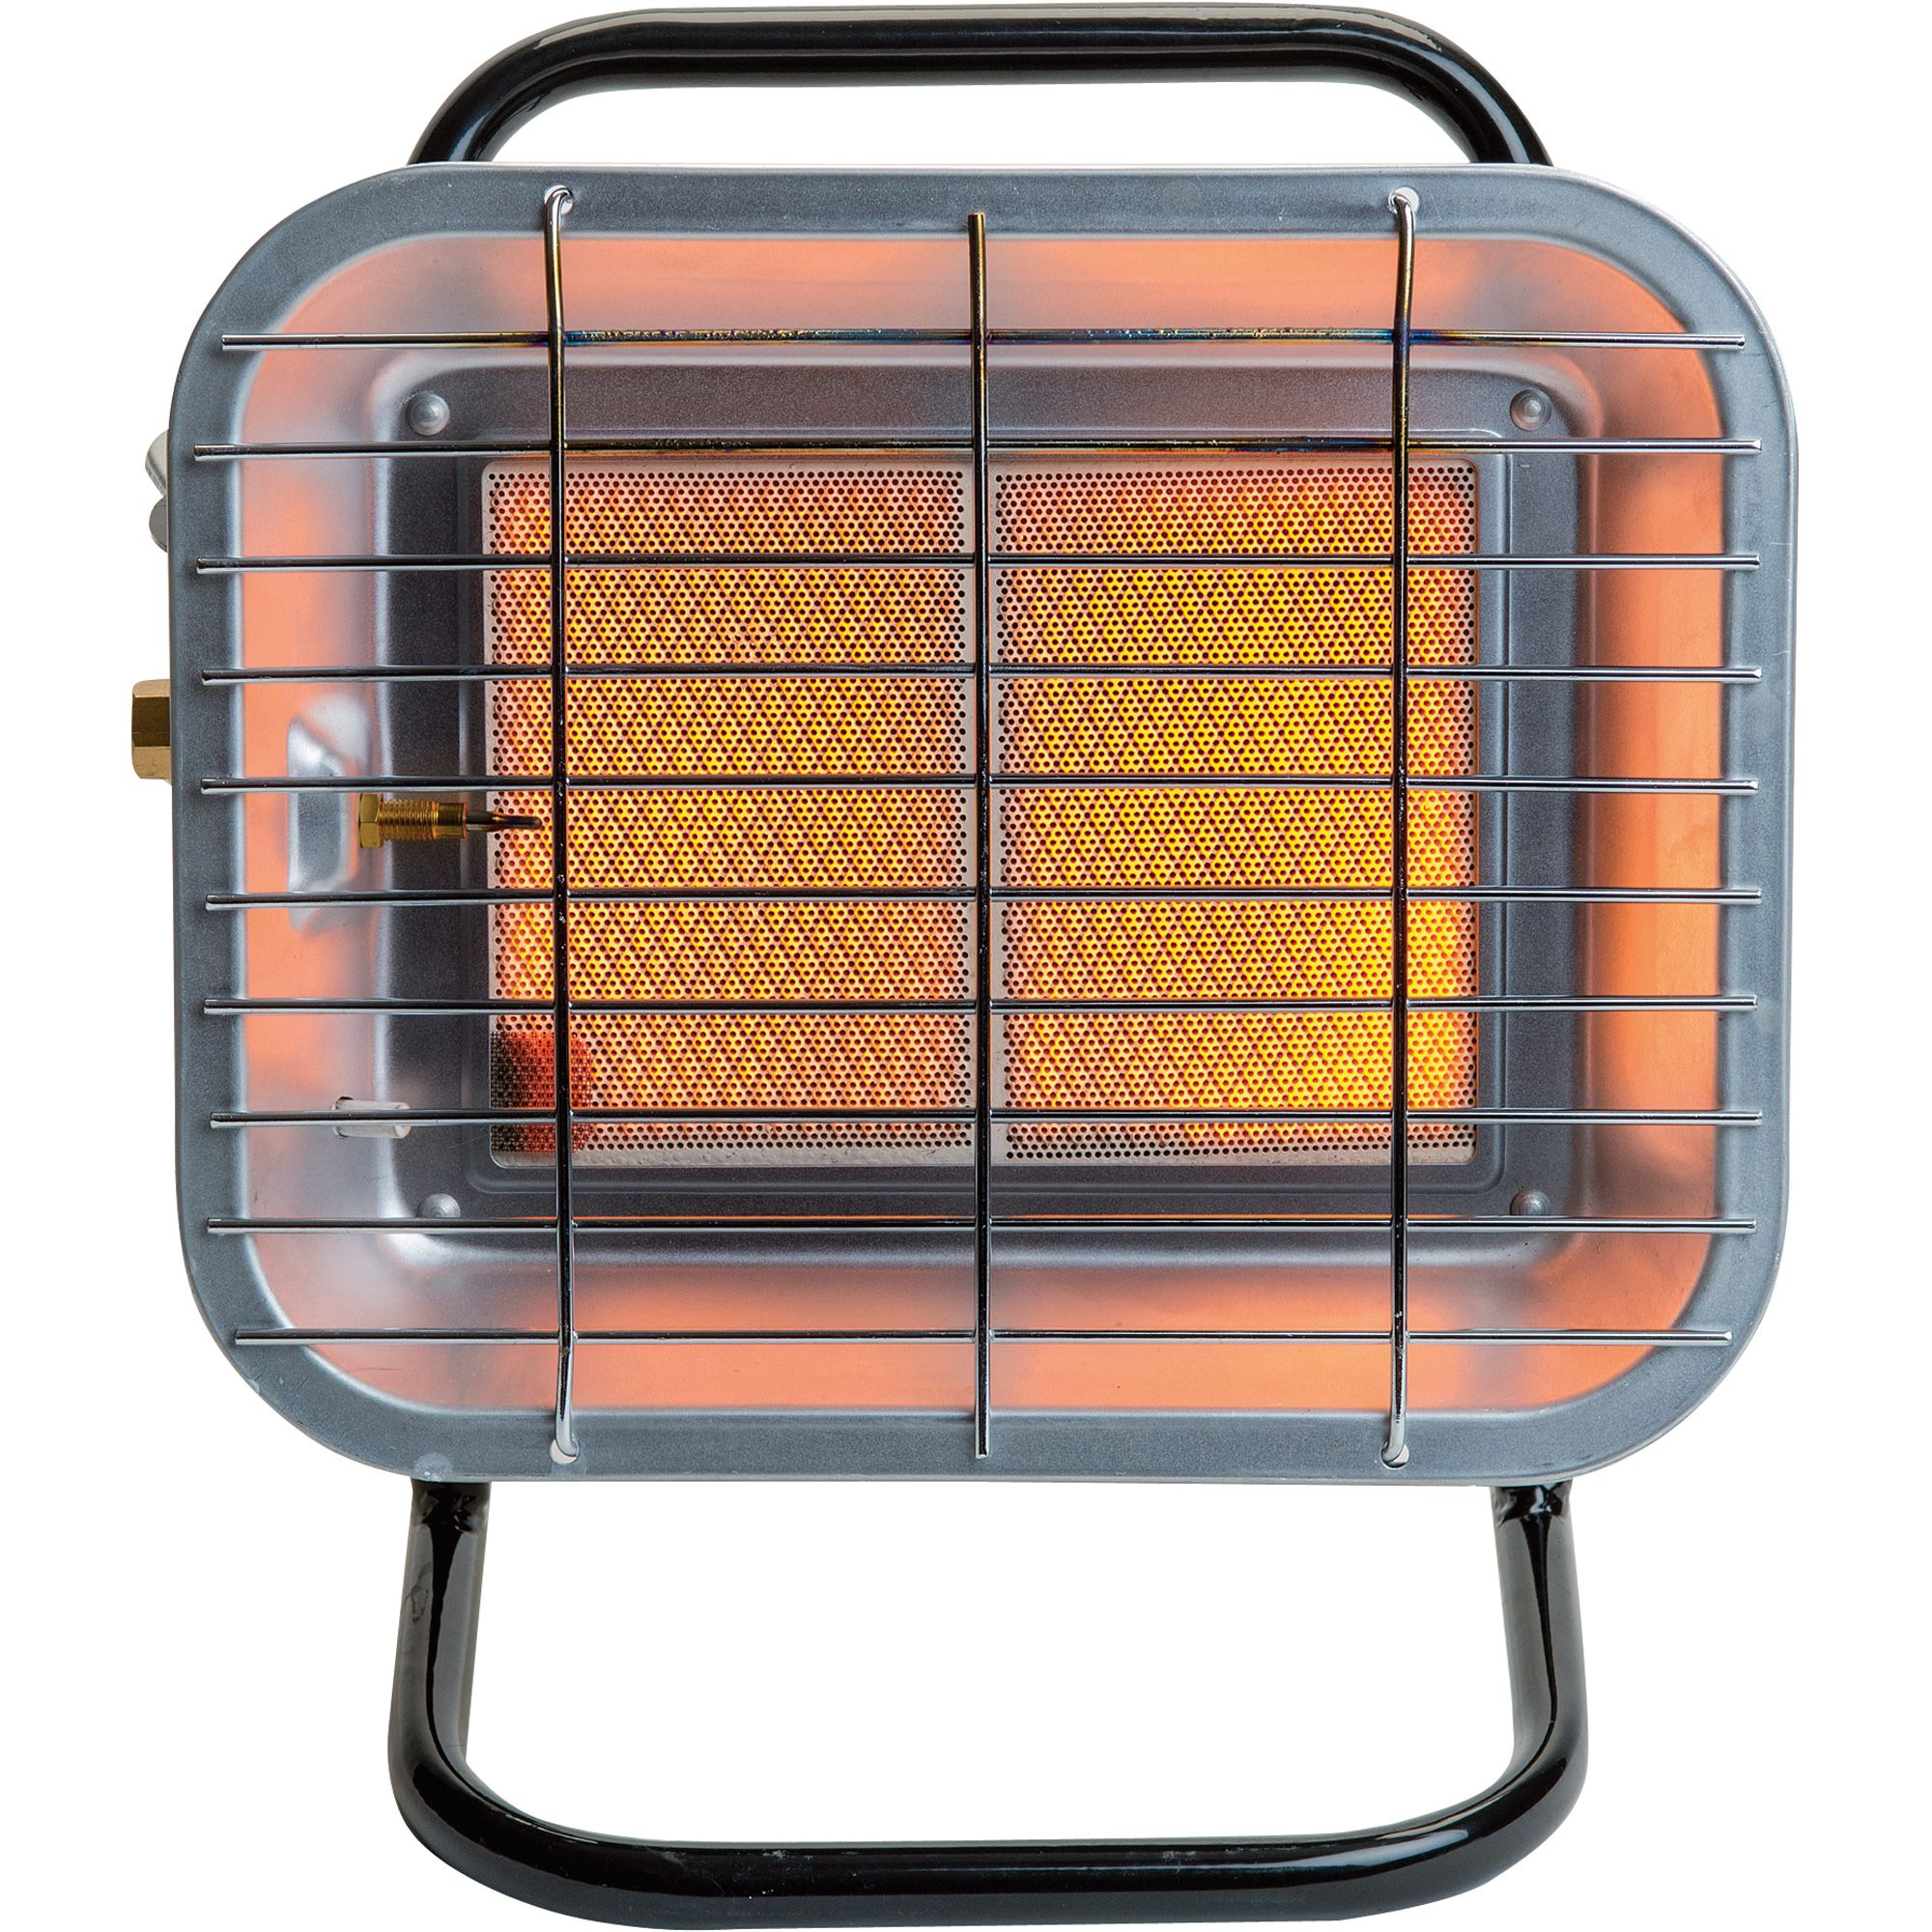 Propane Radiant Heater >> This Thermablaster Portable Propane Infrared Heater Lets You Bring